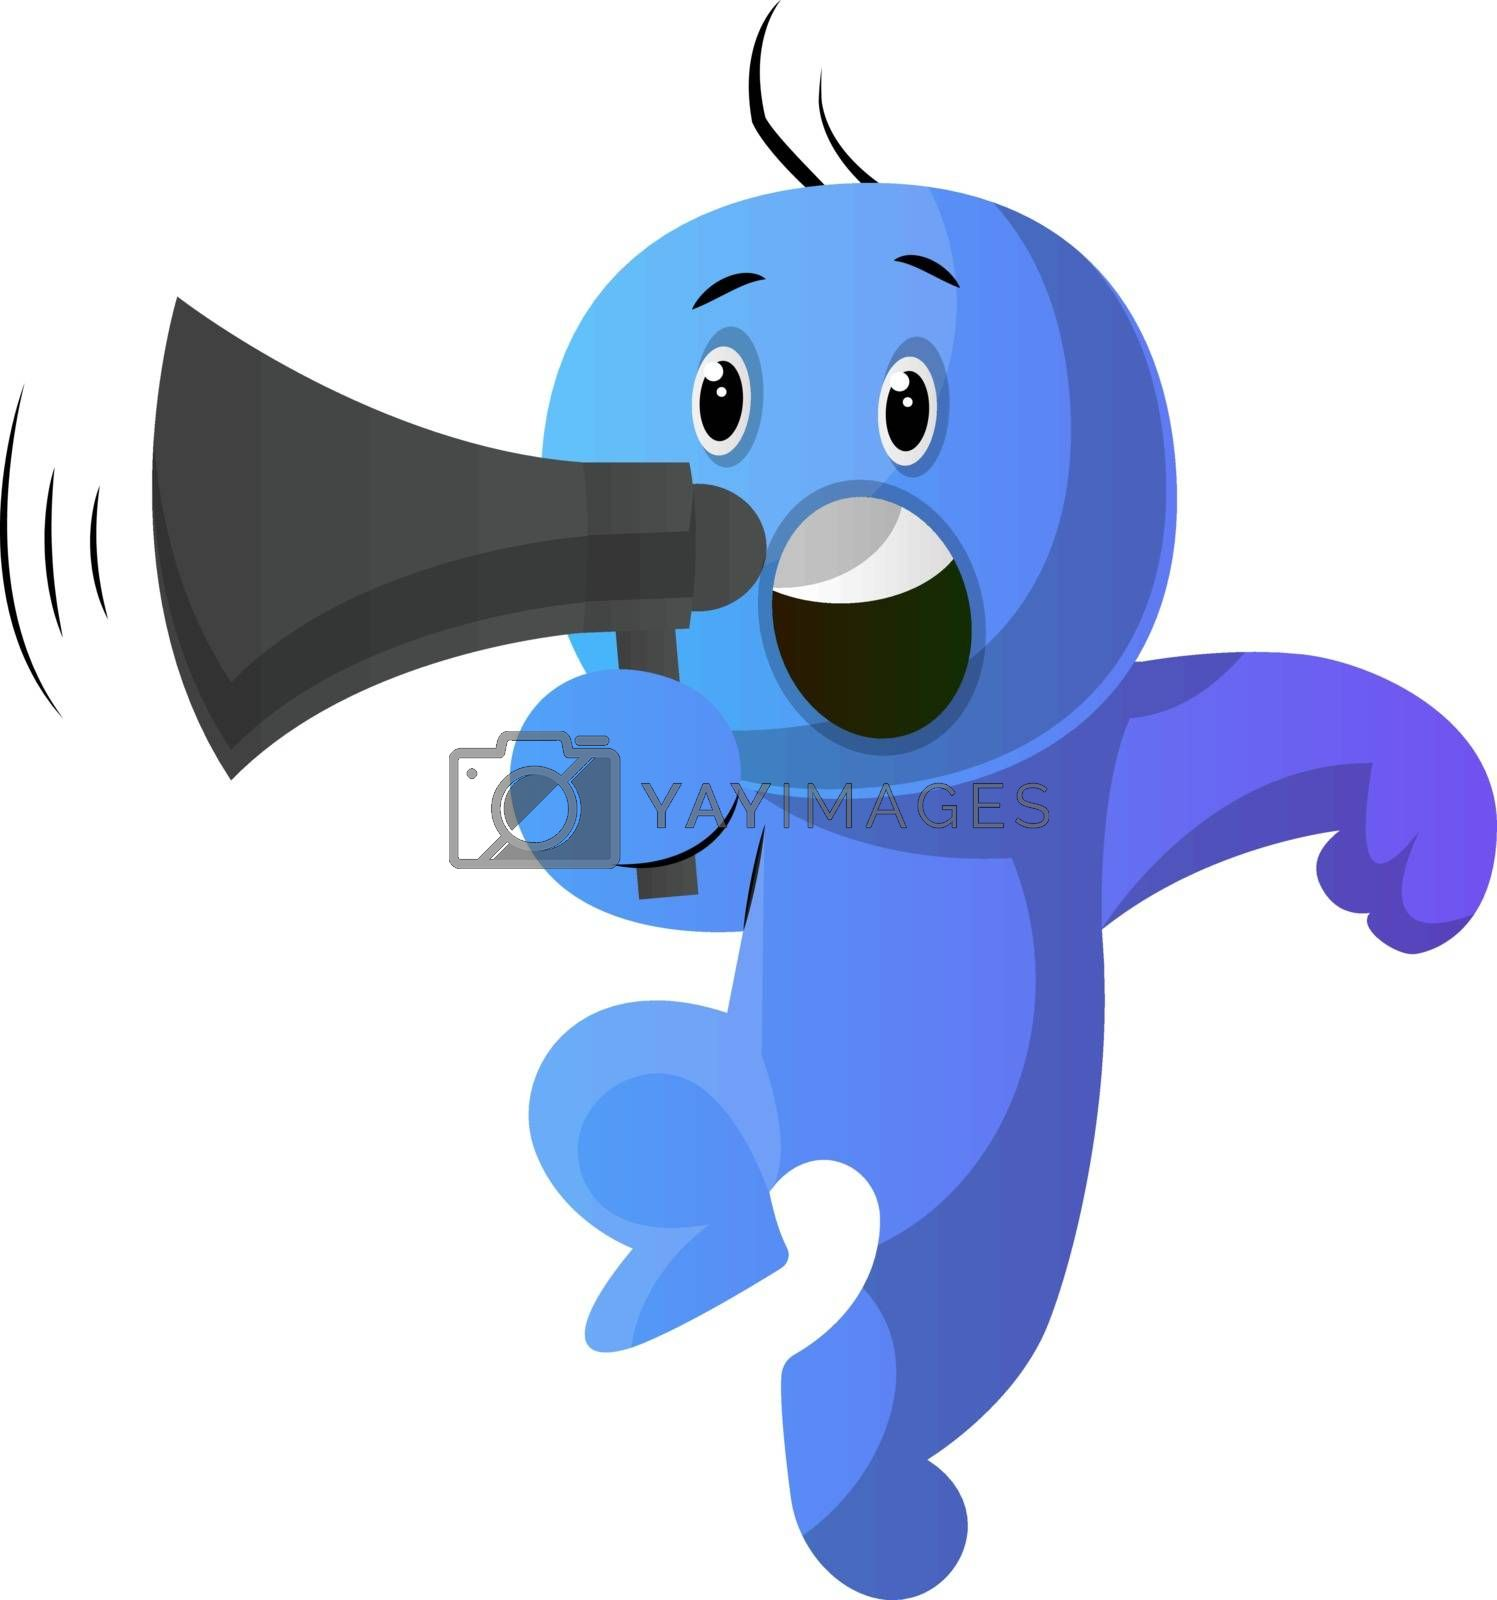 Royalty free image of Blue cartoon caracter holding a speakephone illustration vector  by Morphart